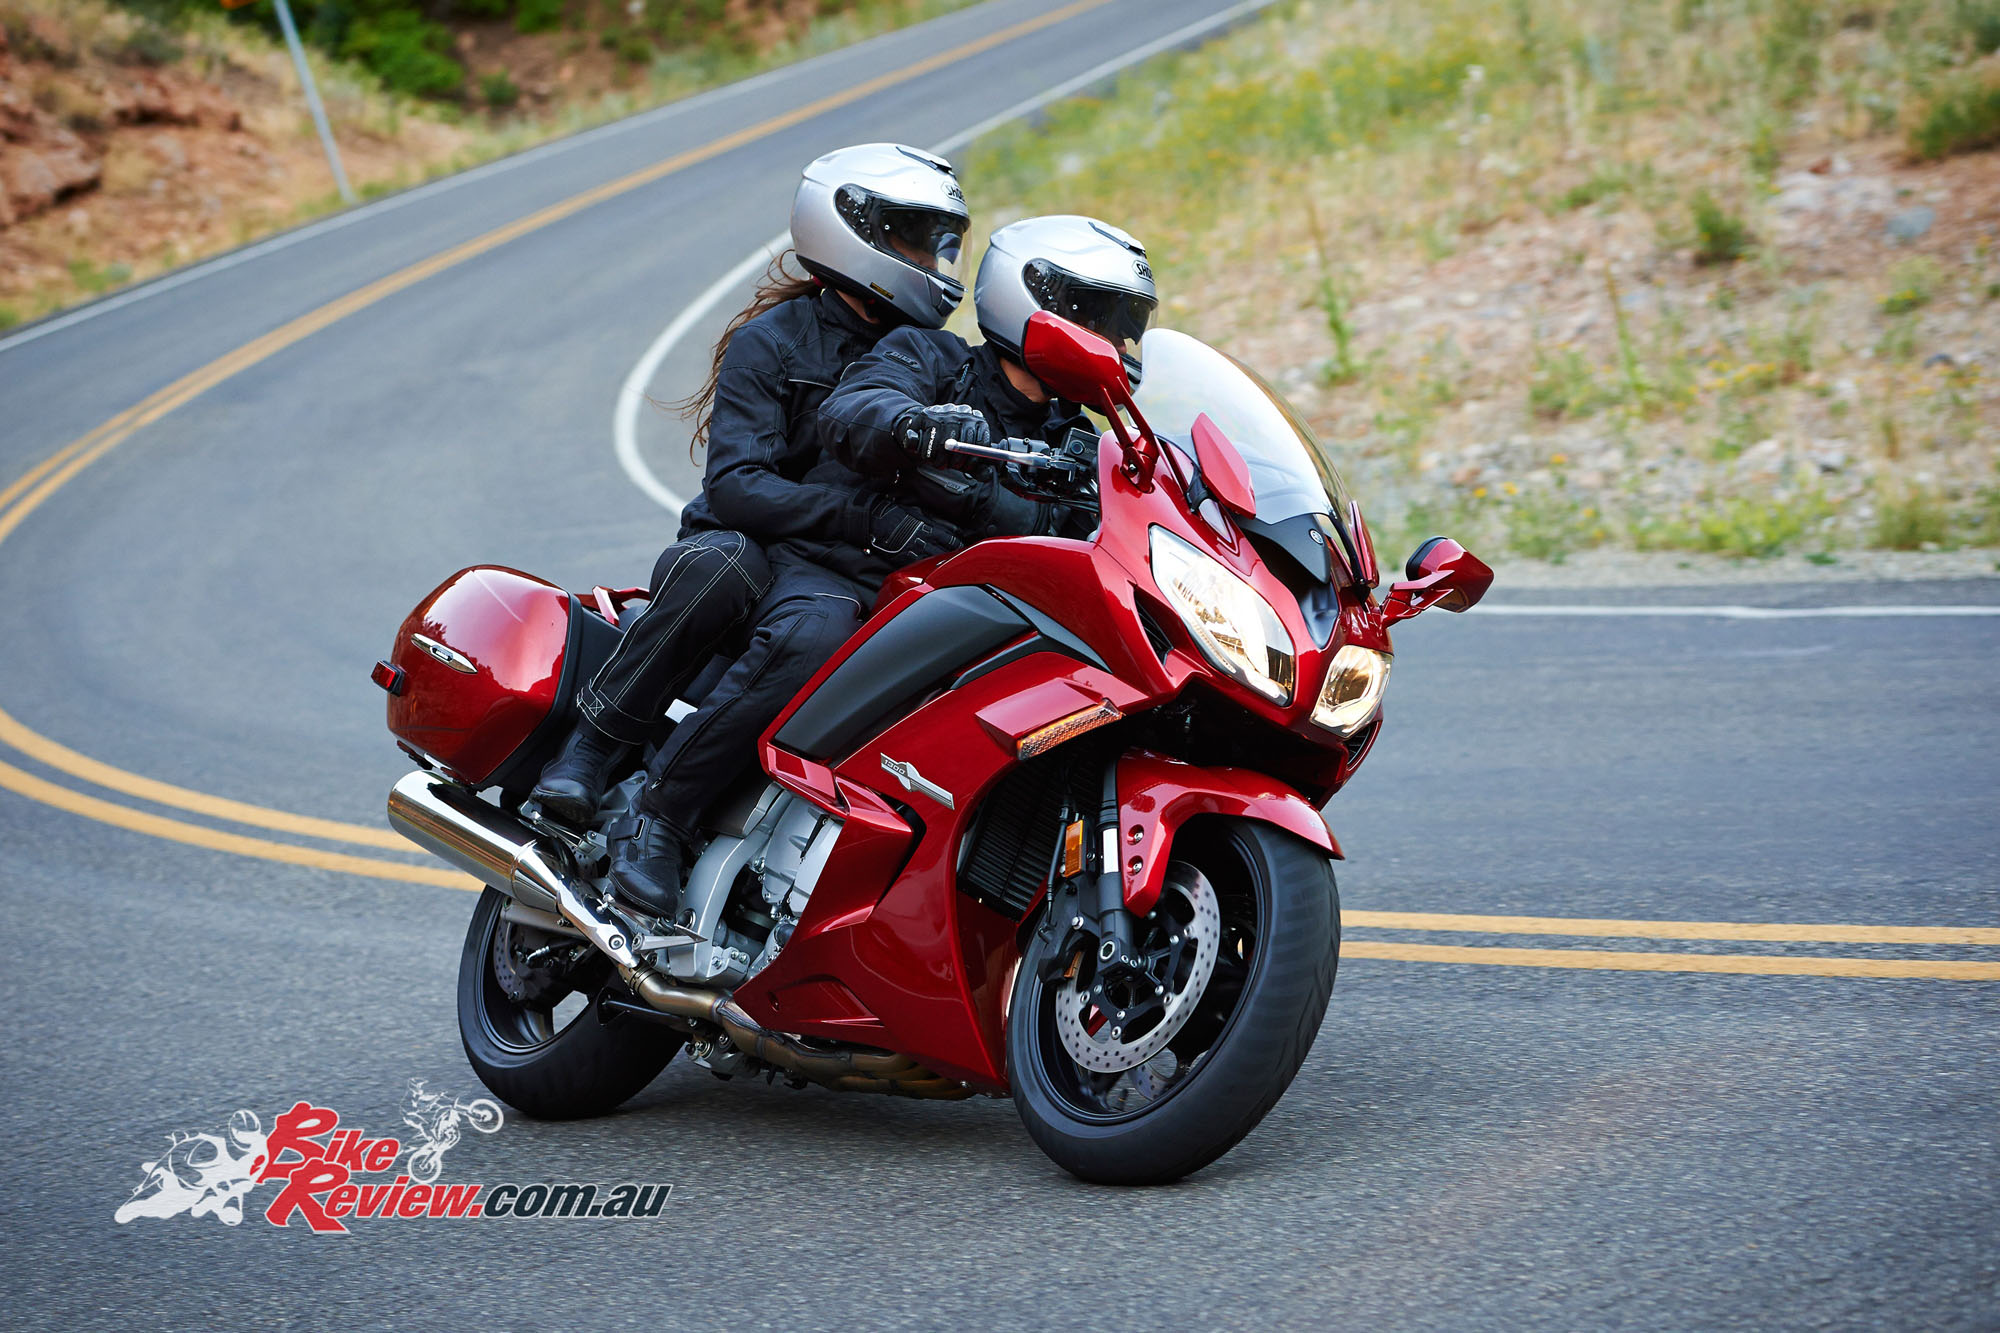 Feature: Yamaha's FJR1300 - Bike Review